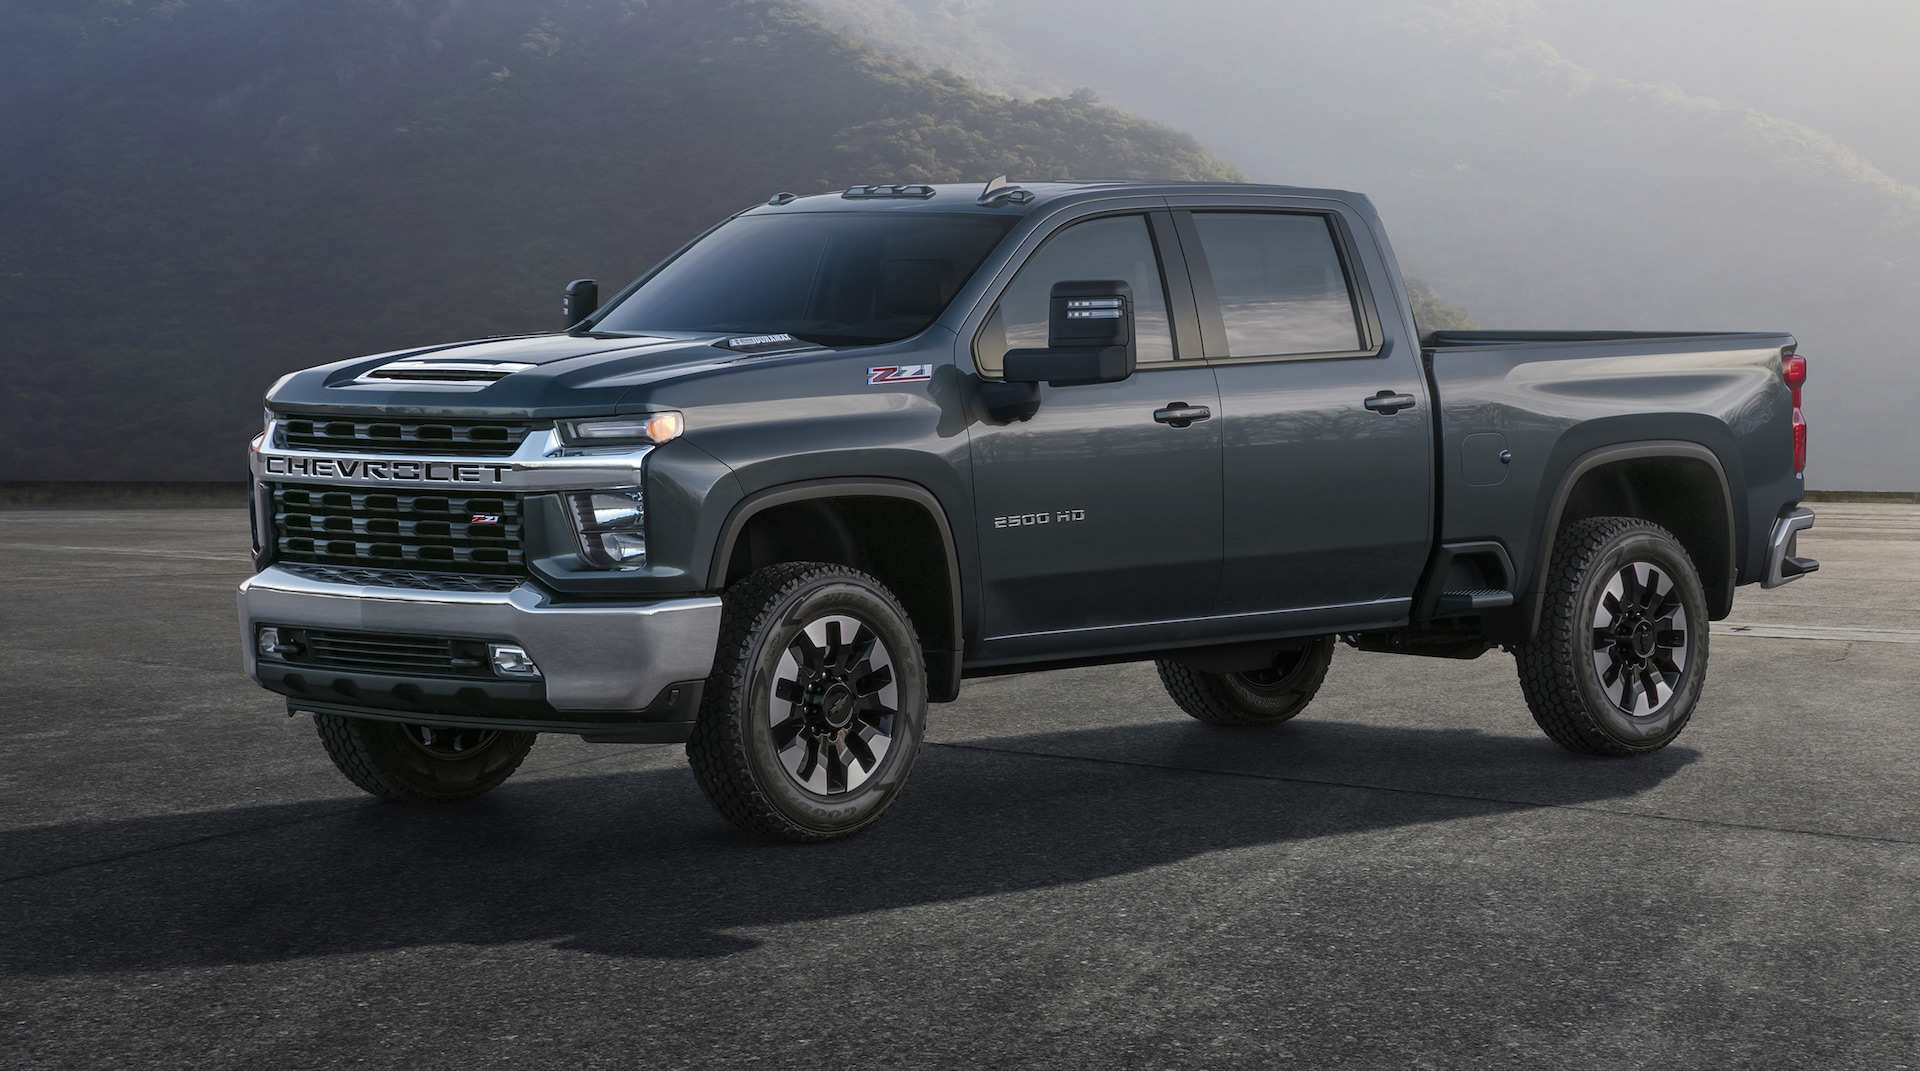 93 All New 2020 Chevrolet 6 6 Gas Engine Images